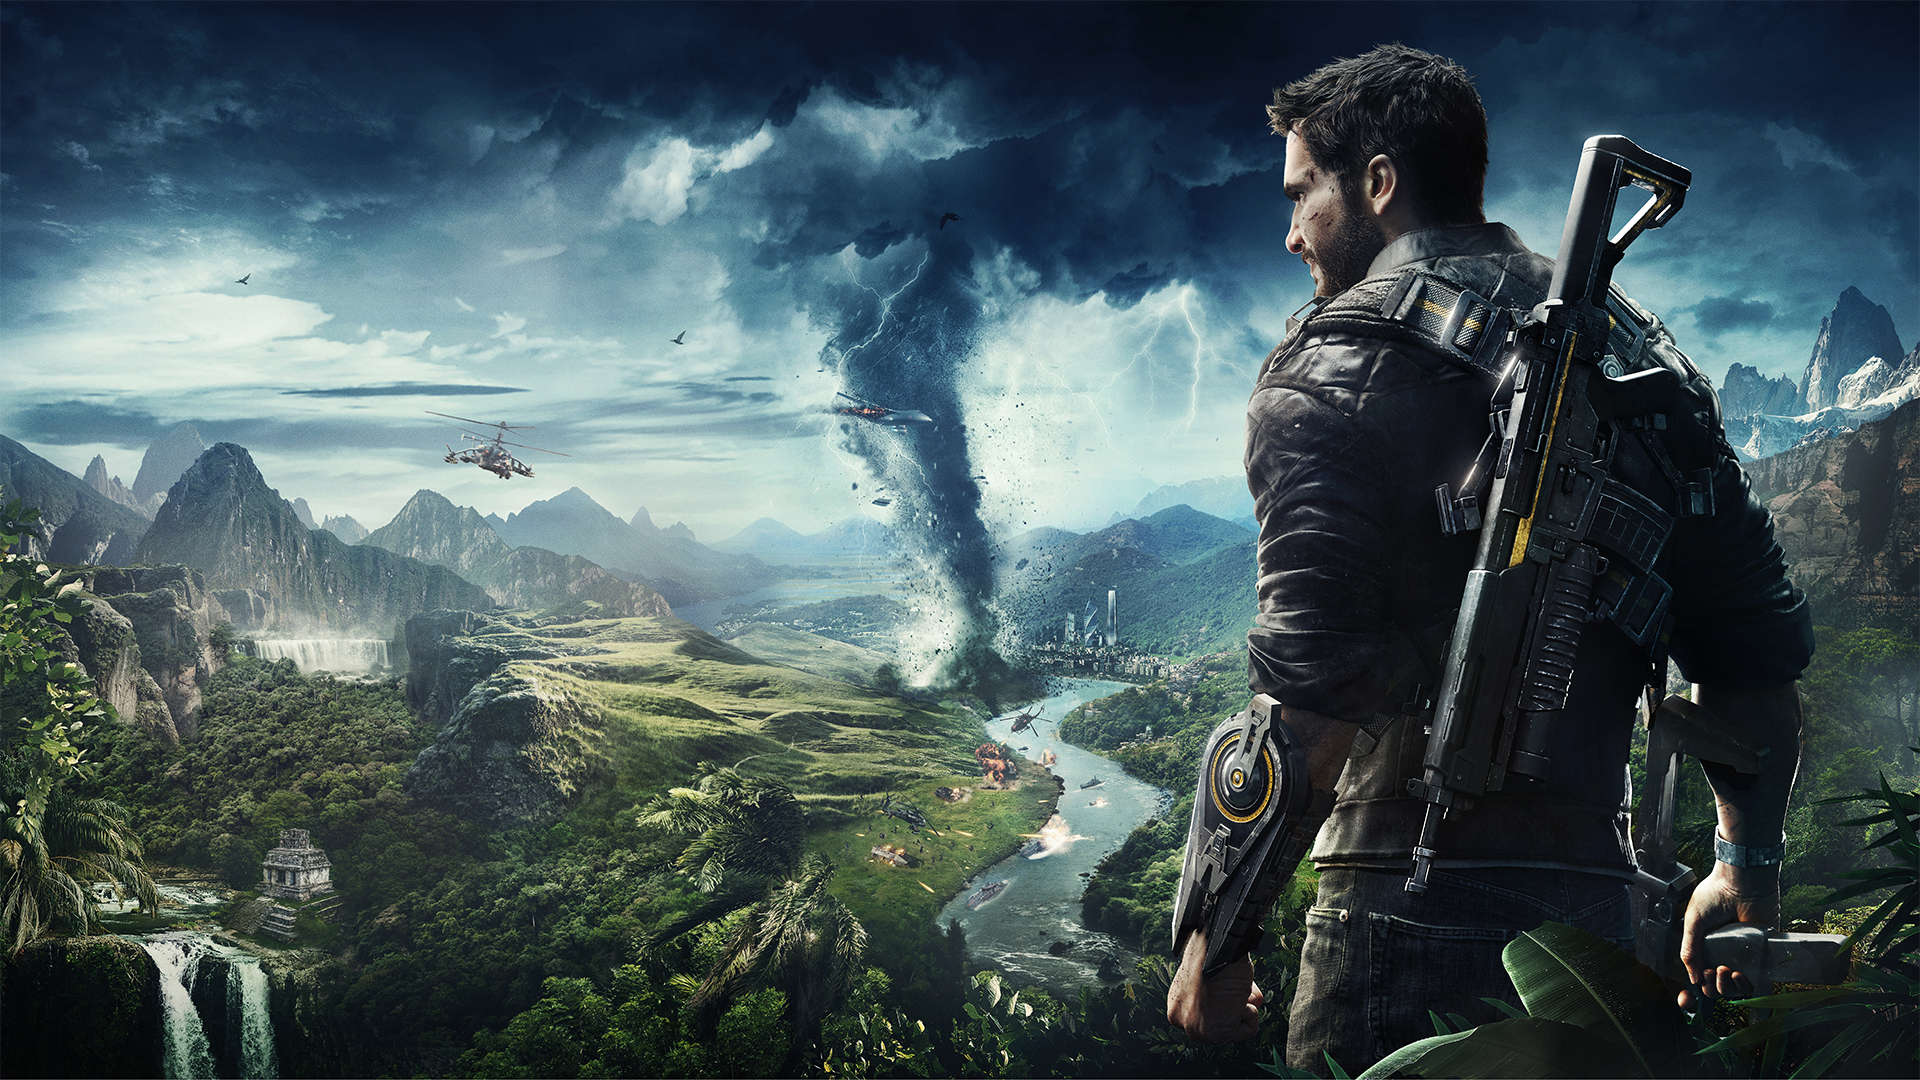 Just Cause 4 Review \u2014 Grappling with Monotony